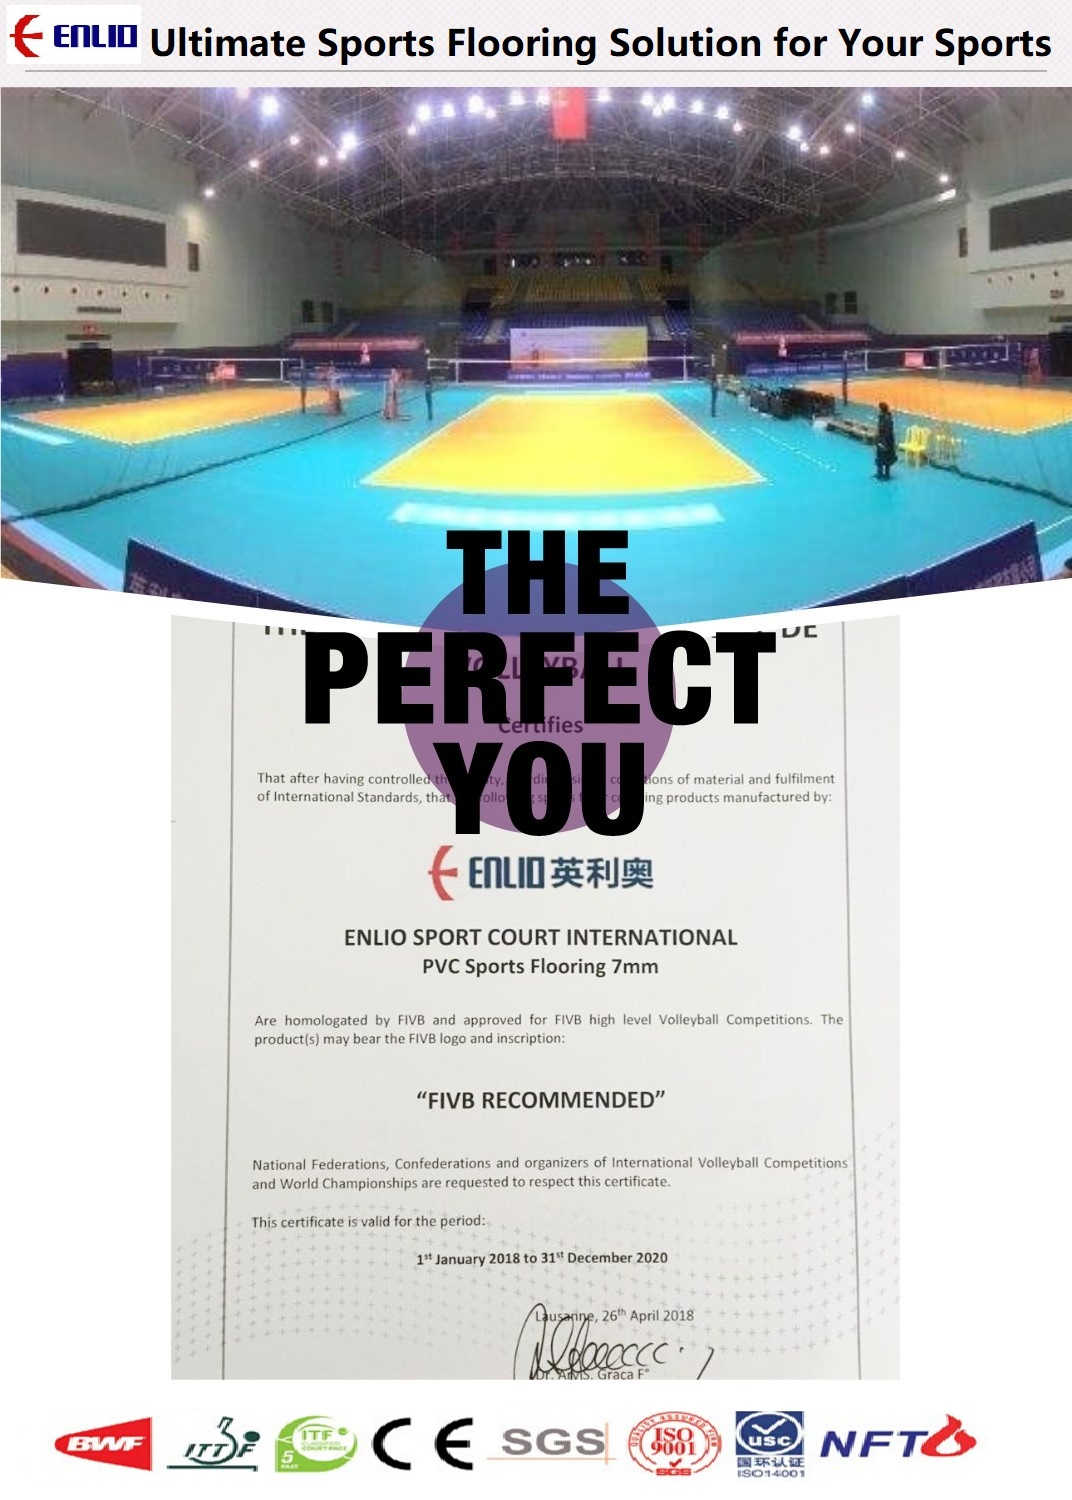 FIVB Certification